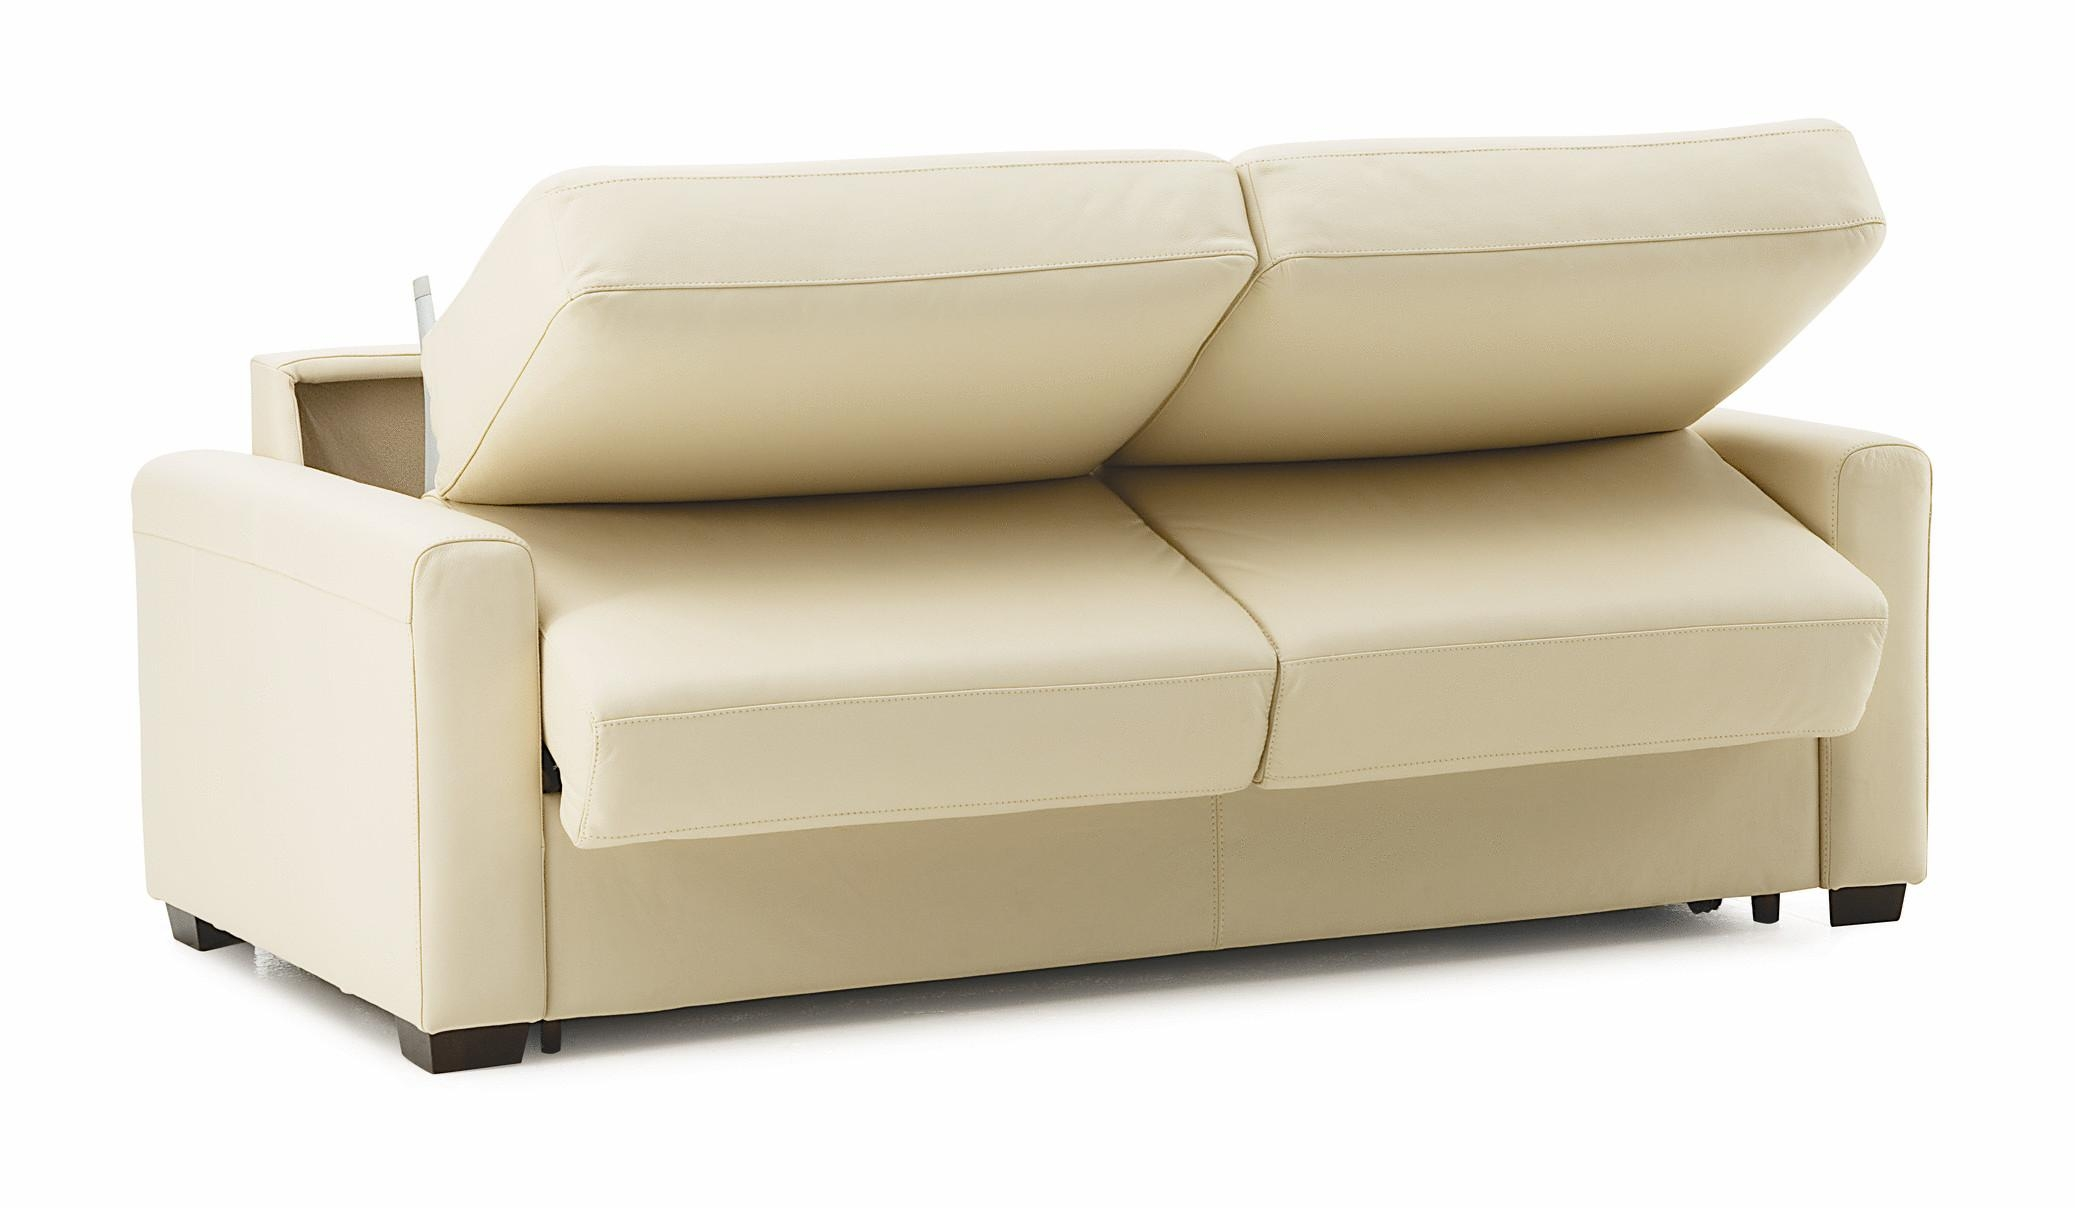 Sleeper Sofa Comfortable And Sleeper Sofas For Small Spaces Throughout Comfortable Convertible Sofas (View 7 of 20)